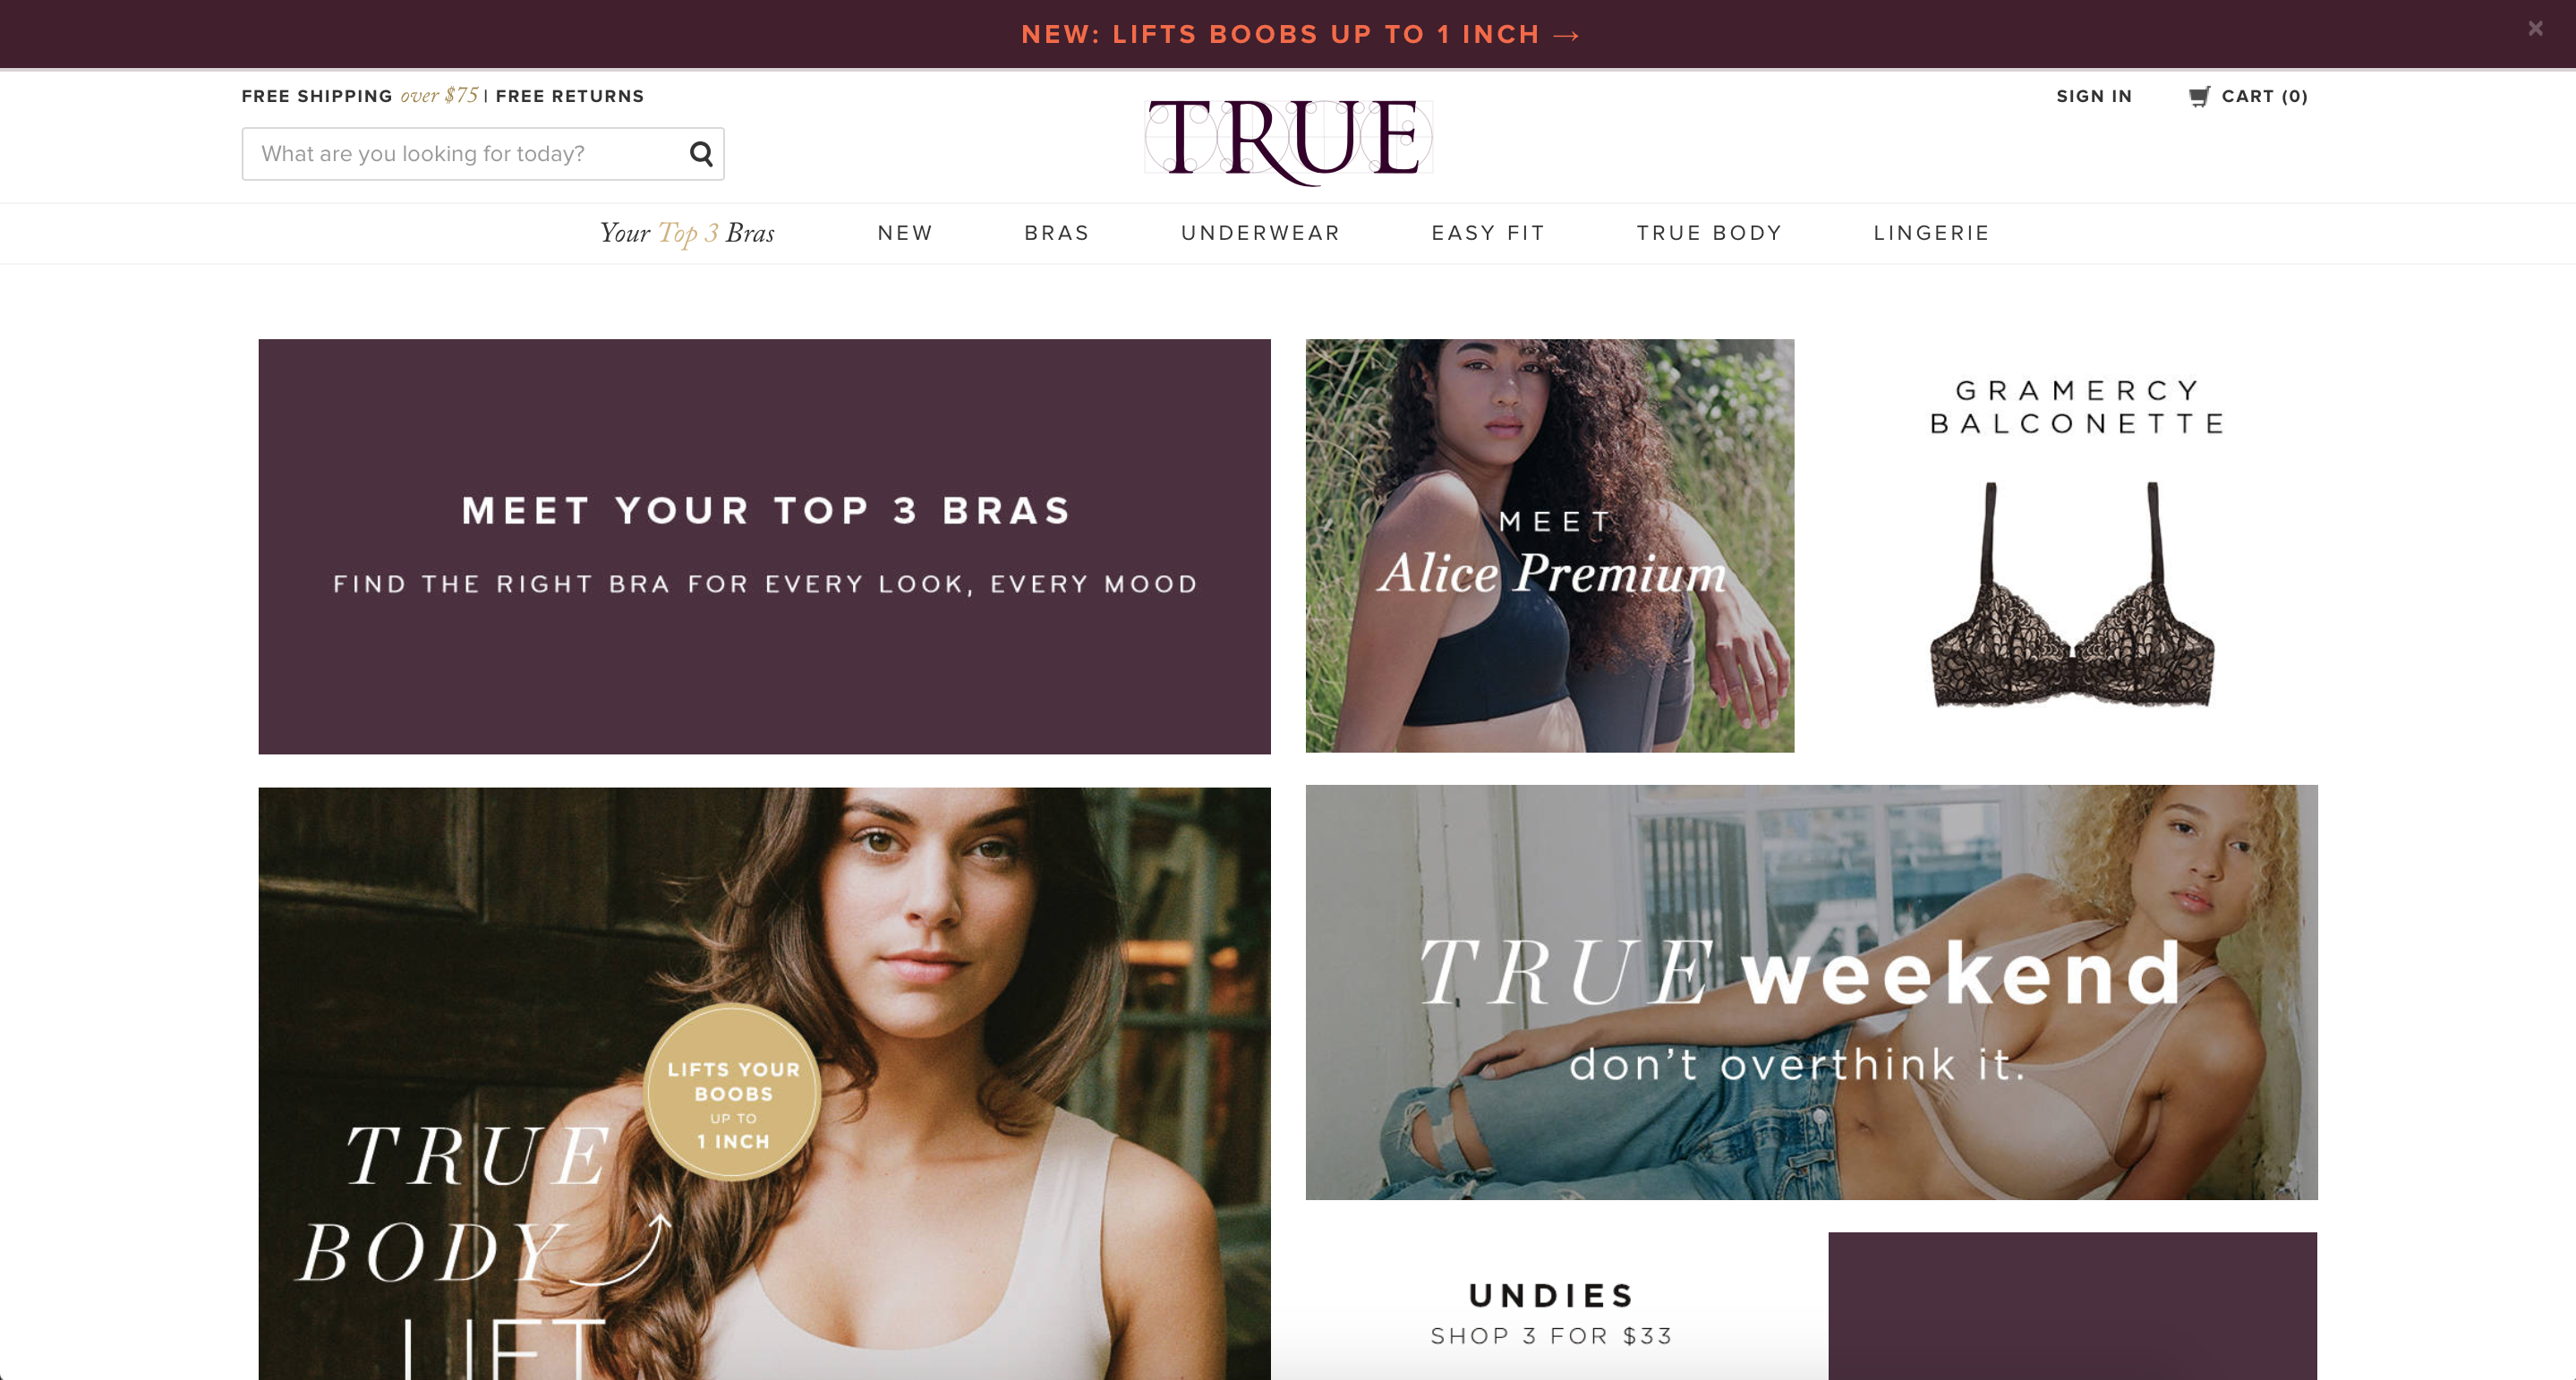 TRUE & CO: Shop women's lingerie and everyday essentials inspired by community feedback. Discover bras, underwear, and lingerie all made to fit you at True&Co.